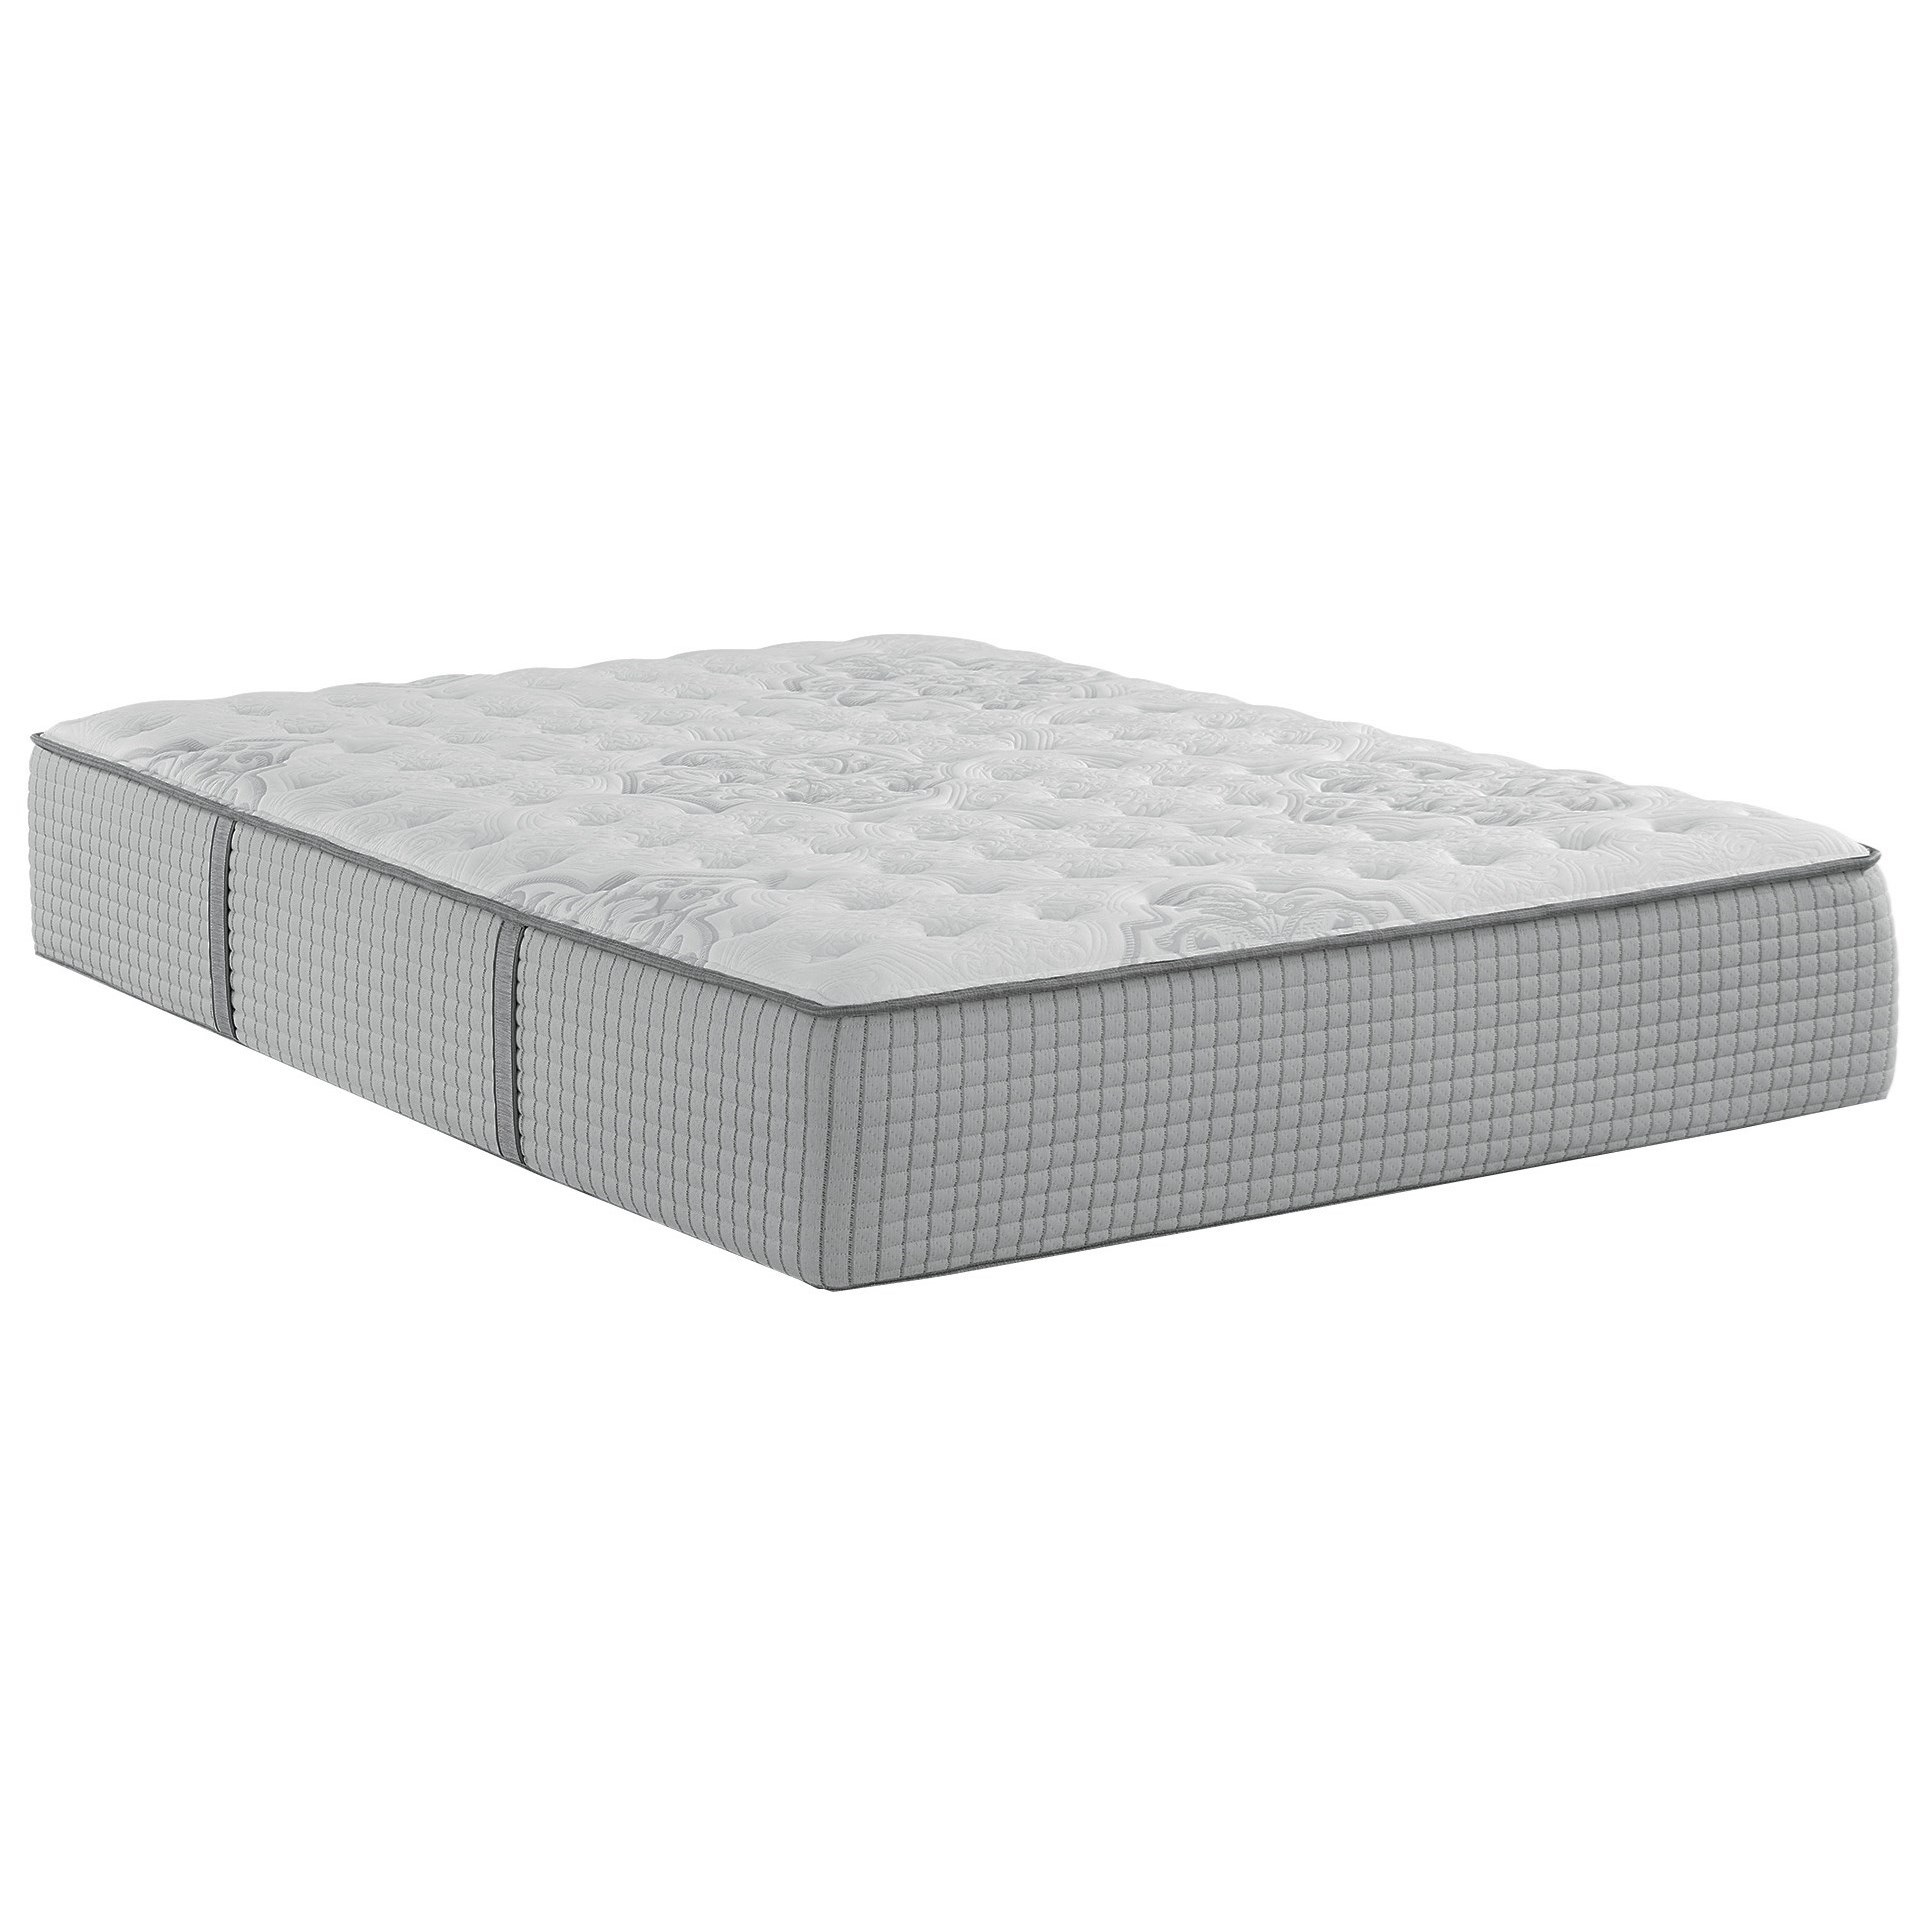 Biltmore Hybrid Motif Cal King Firm Hybrid Mattress by Restonic at Rotmans